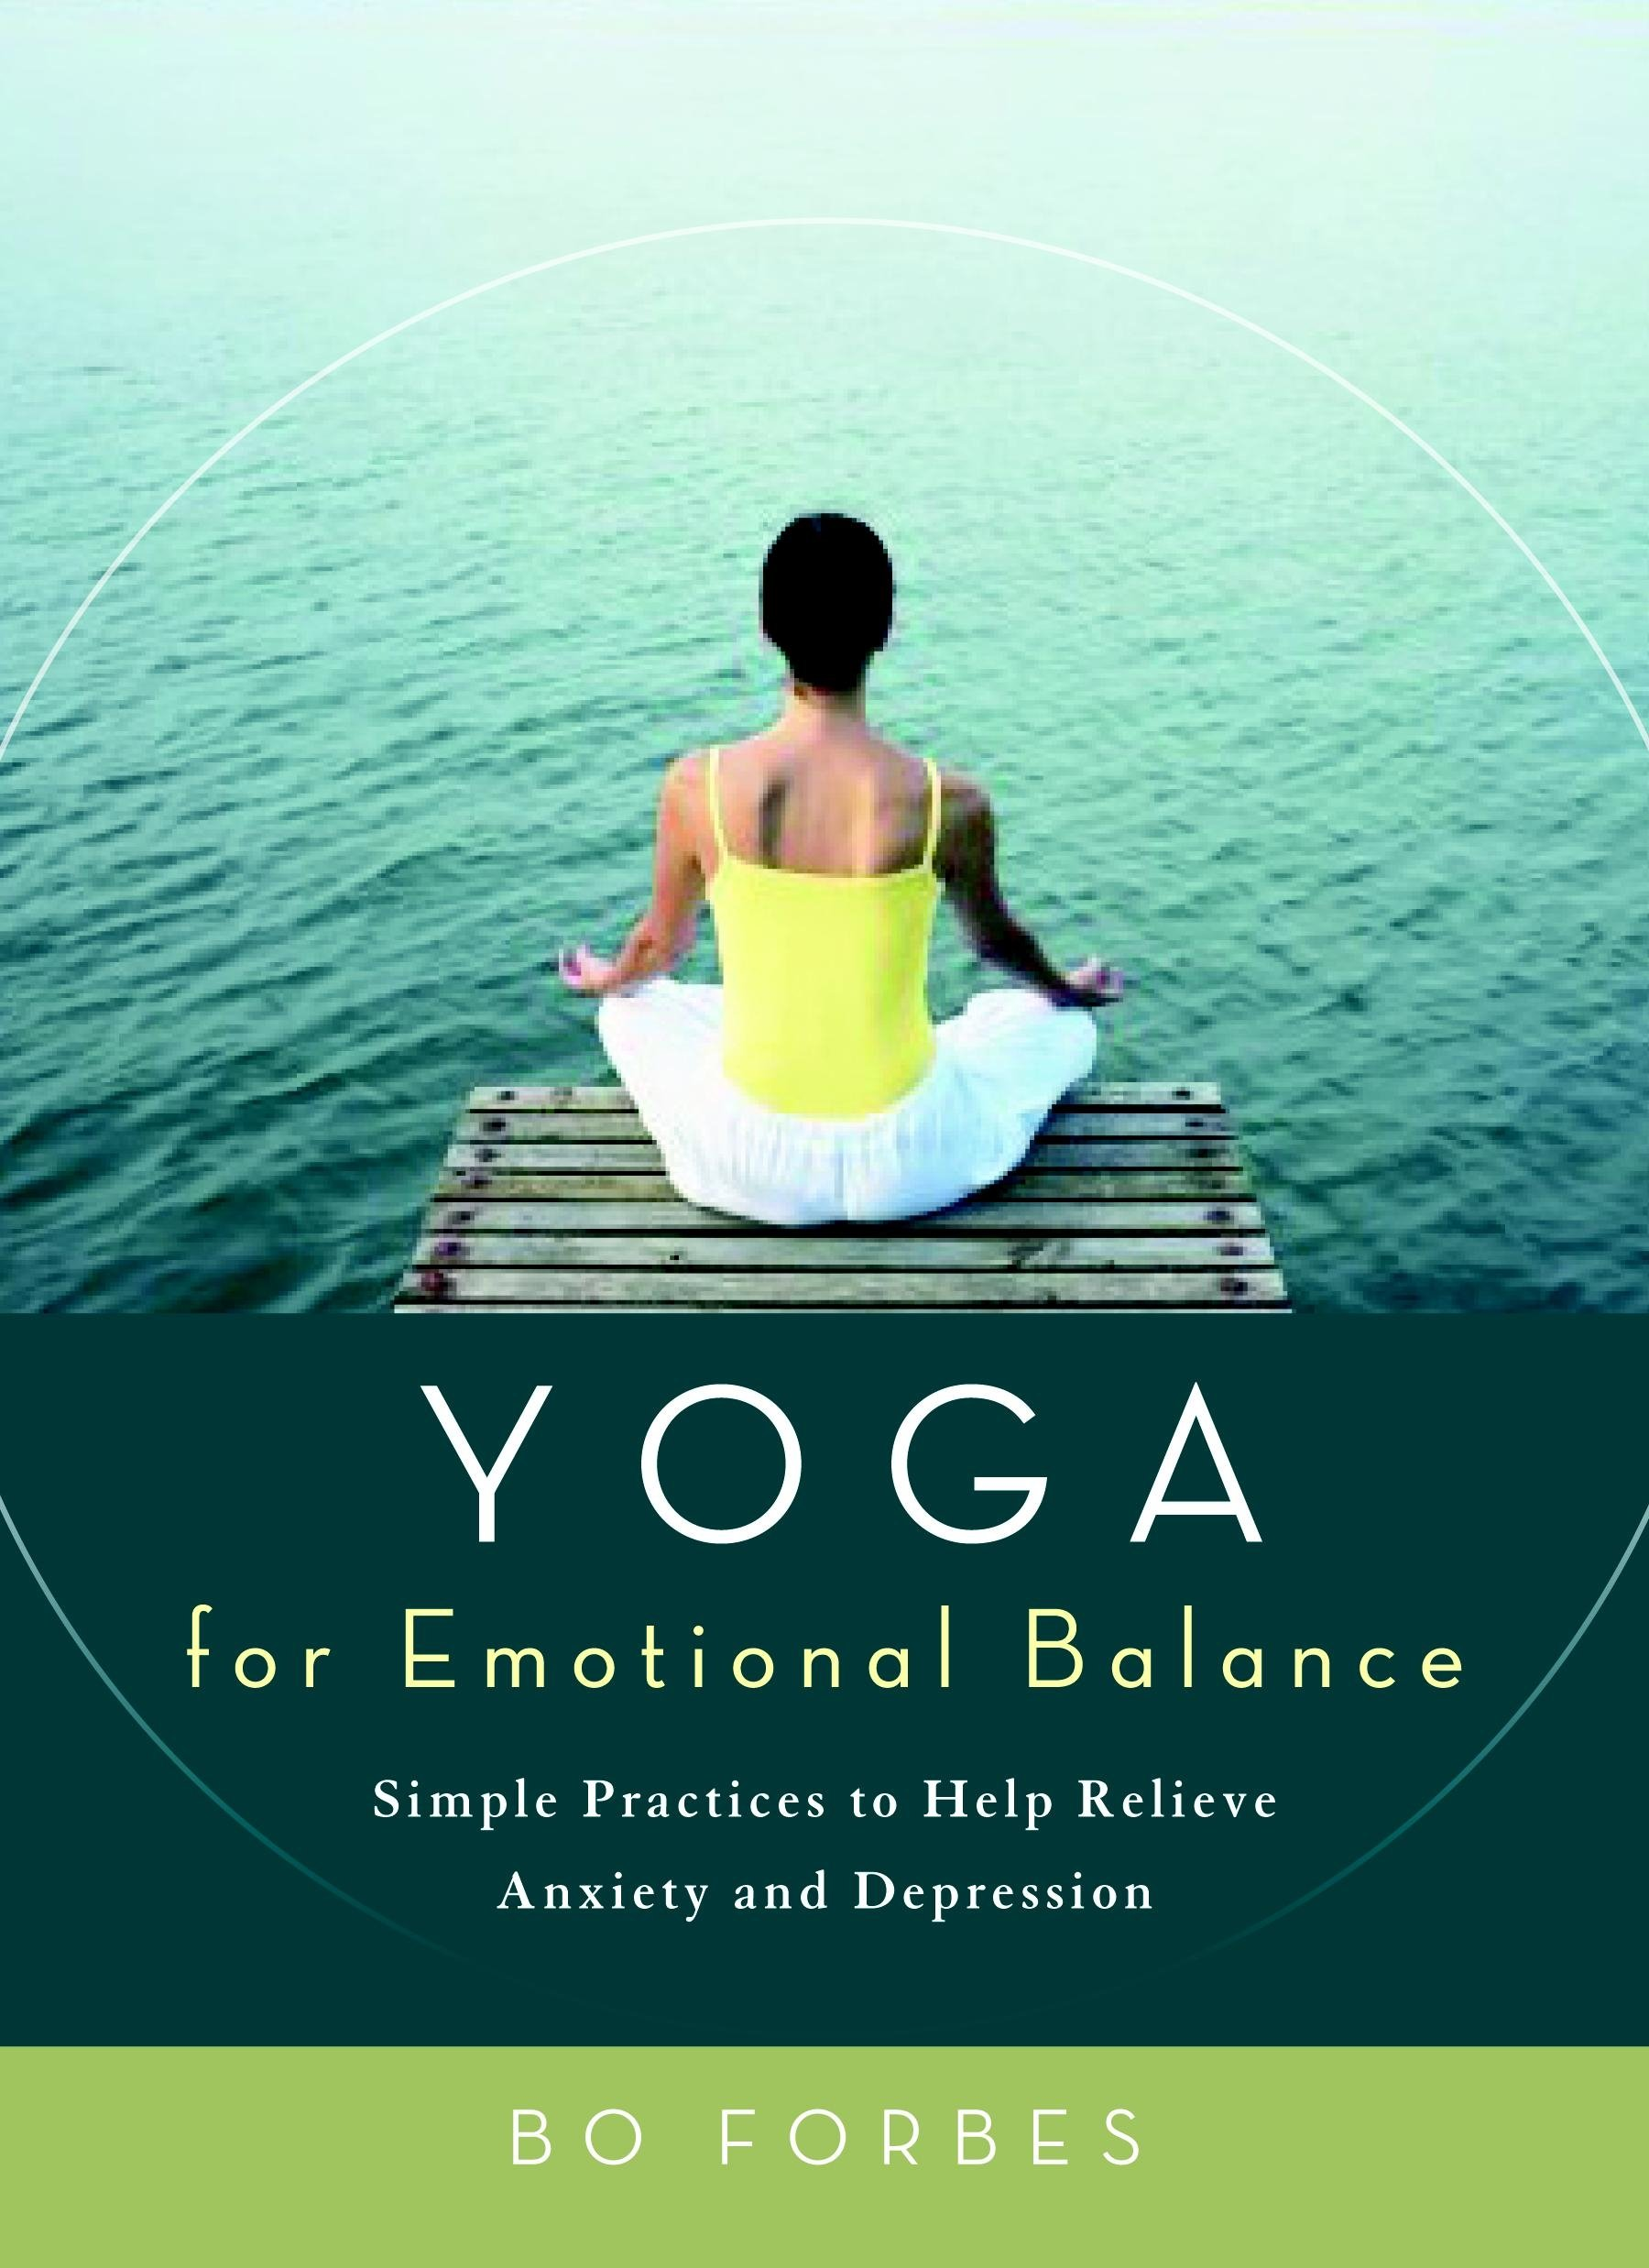 Yoga for emotional balance simple practices to help relieve yoga for emotional balance simple practices to help relieve anxiety and depression bo forbes 8601405130747 amazon books fandeluxe PDF